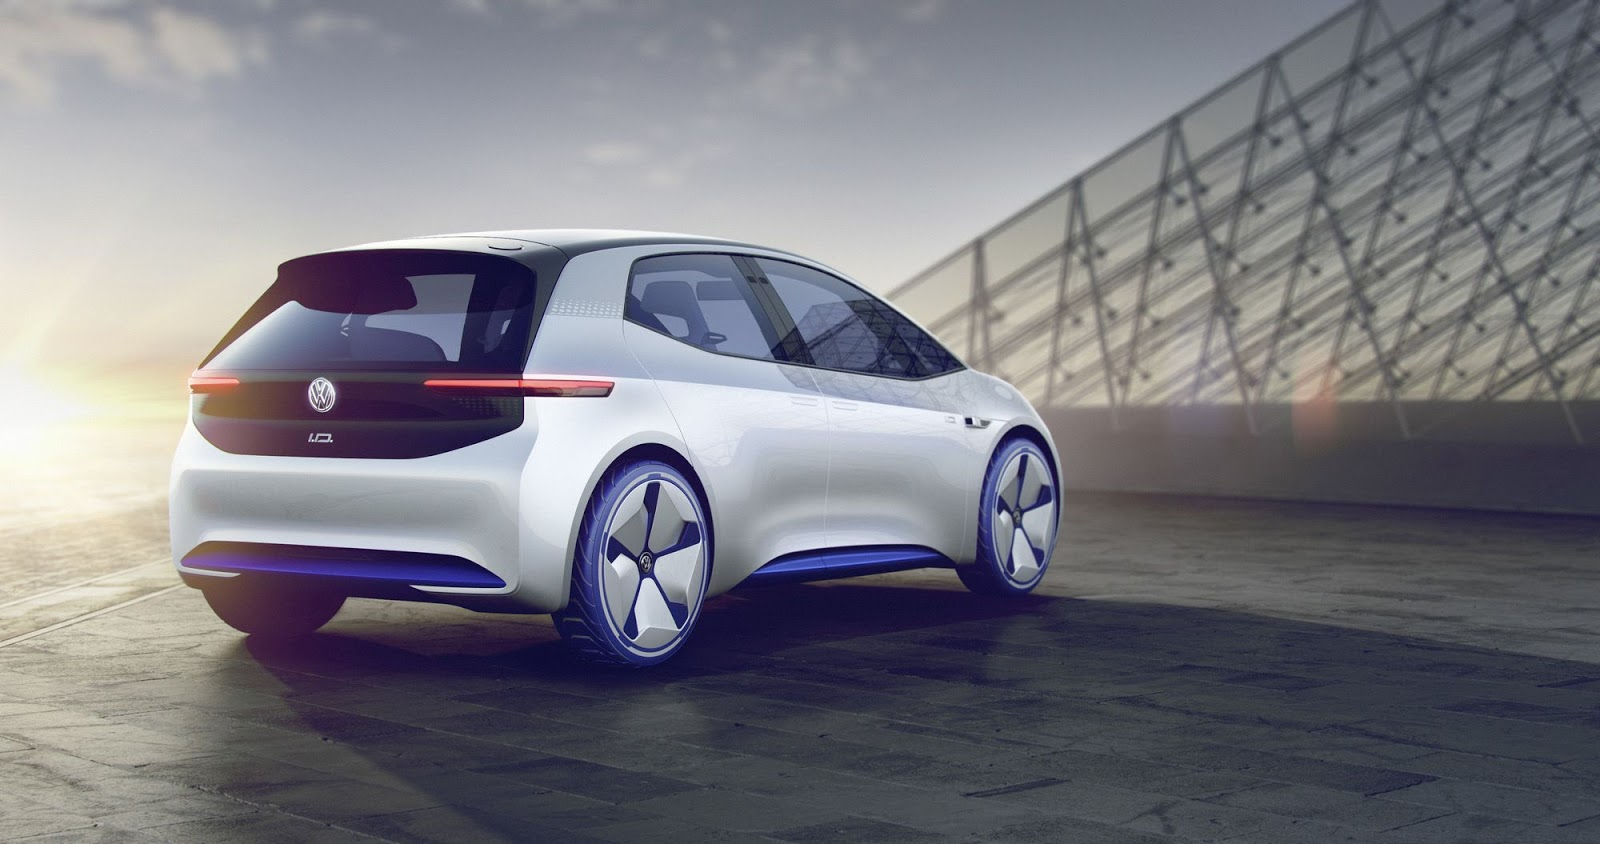 vw u0026 39 s new electric vehicles to be priced similarly to conventional cars